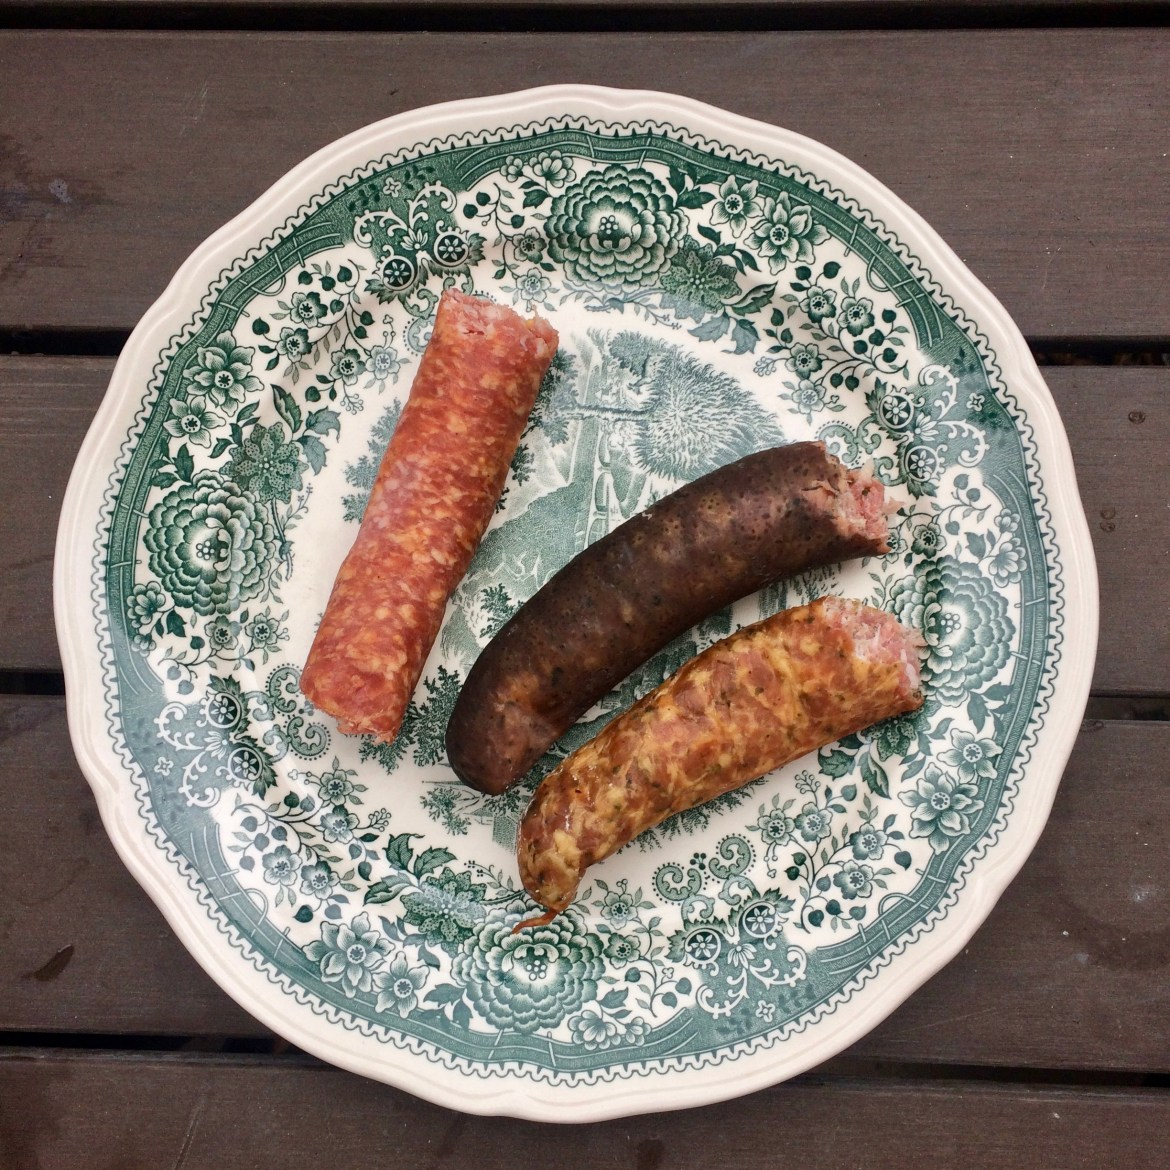 Three half-eaten German Mettwurst sausages on a green patterned plate